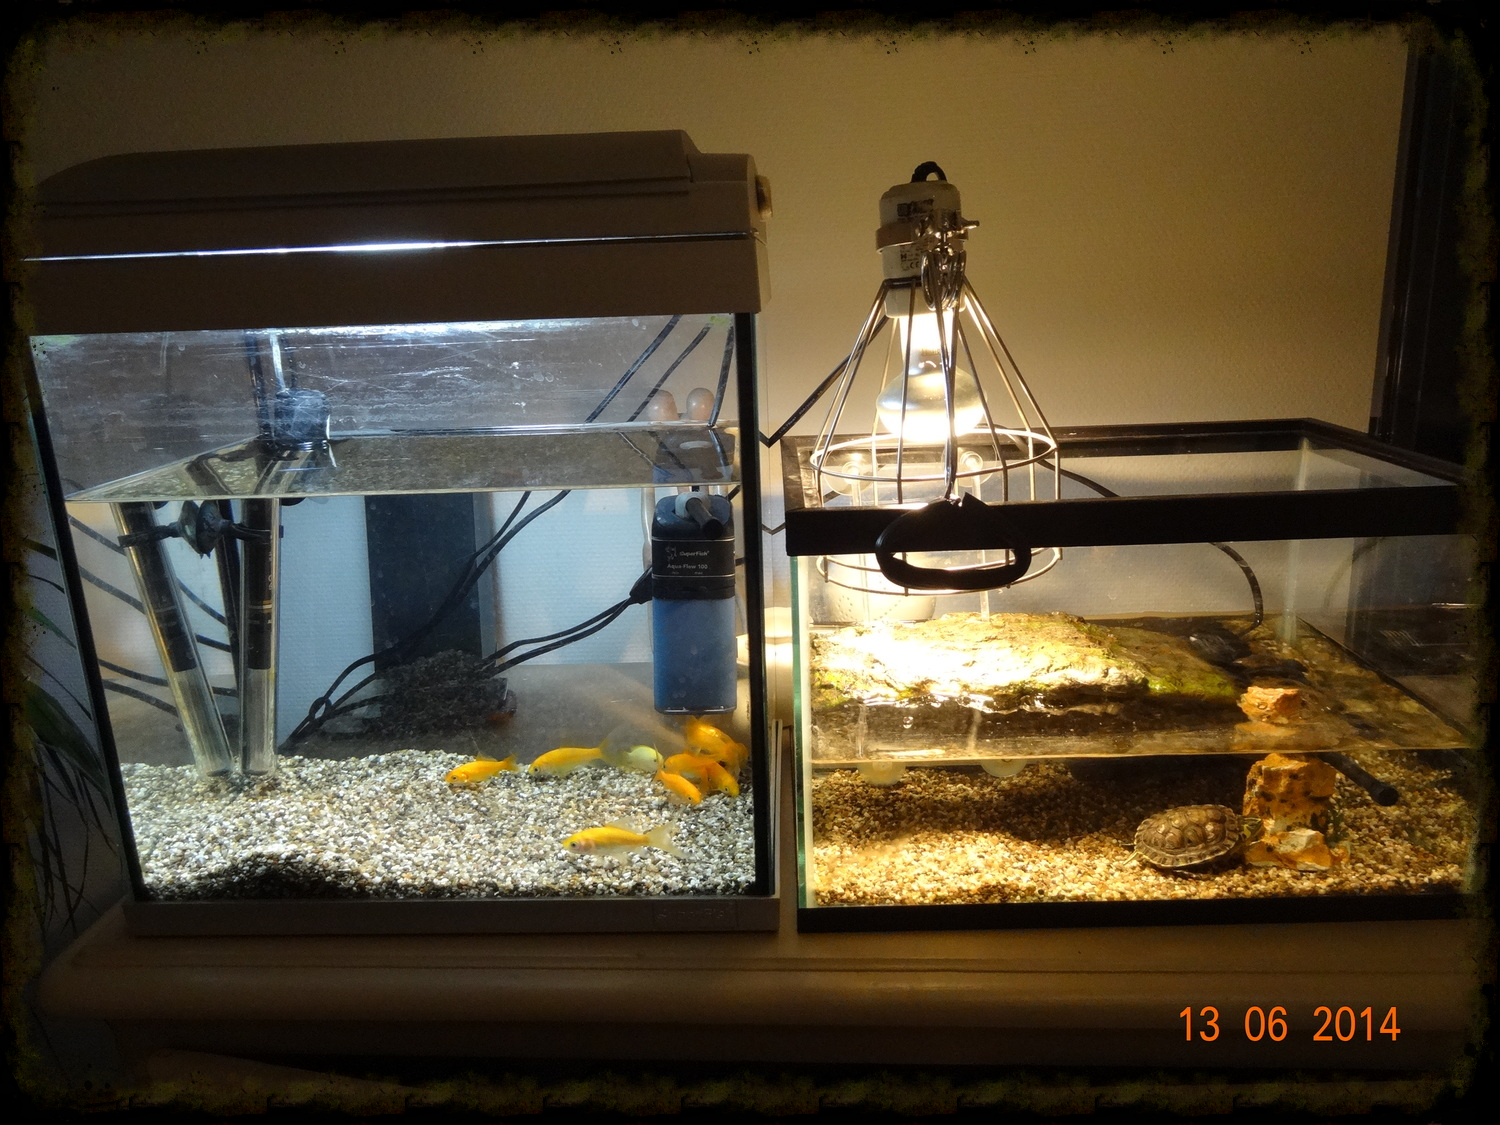 Fish and Turtle, settled into their summer residence.